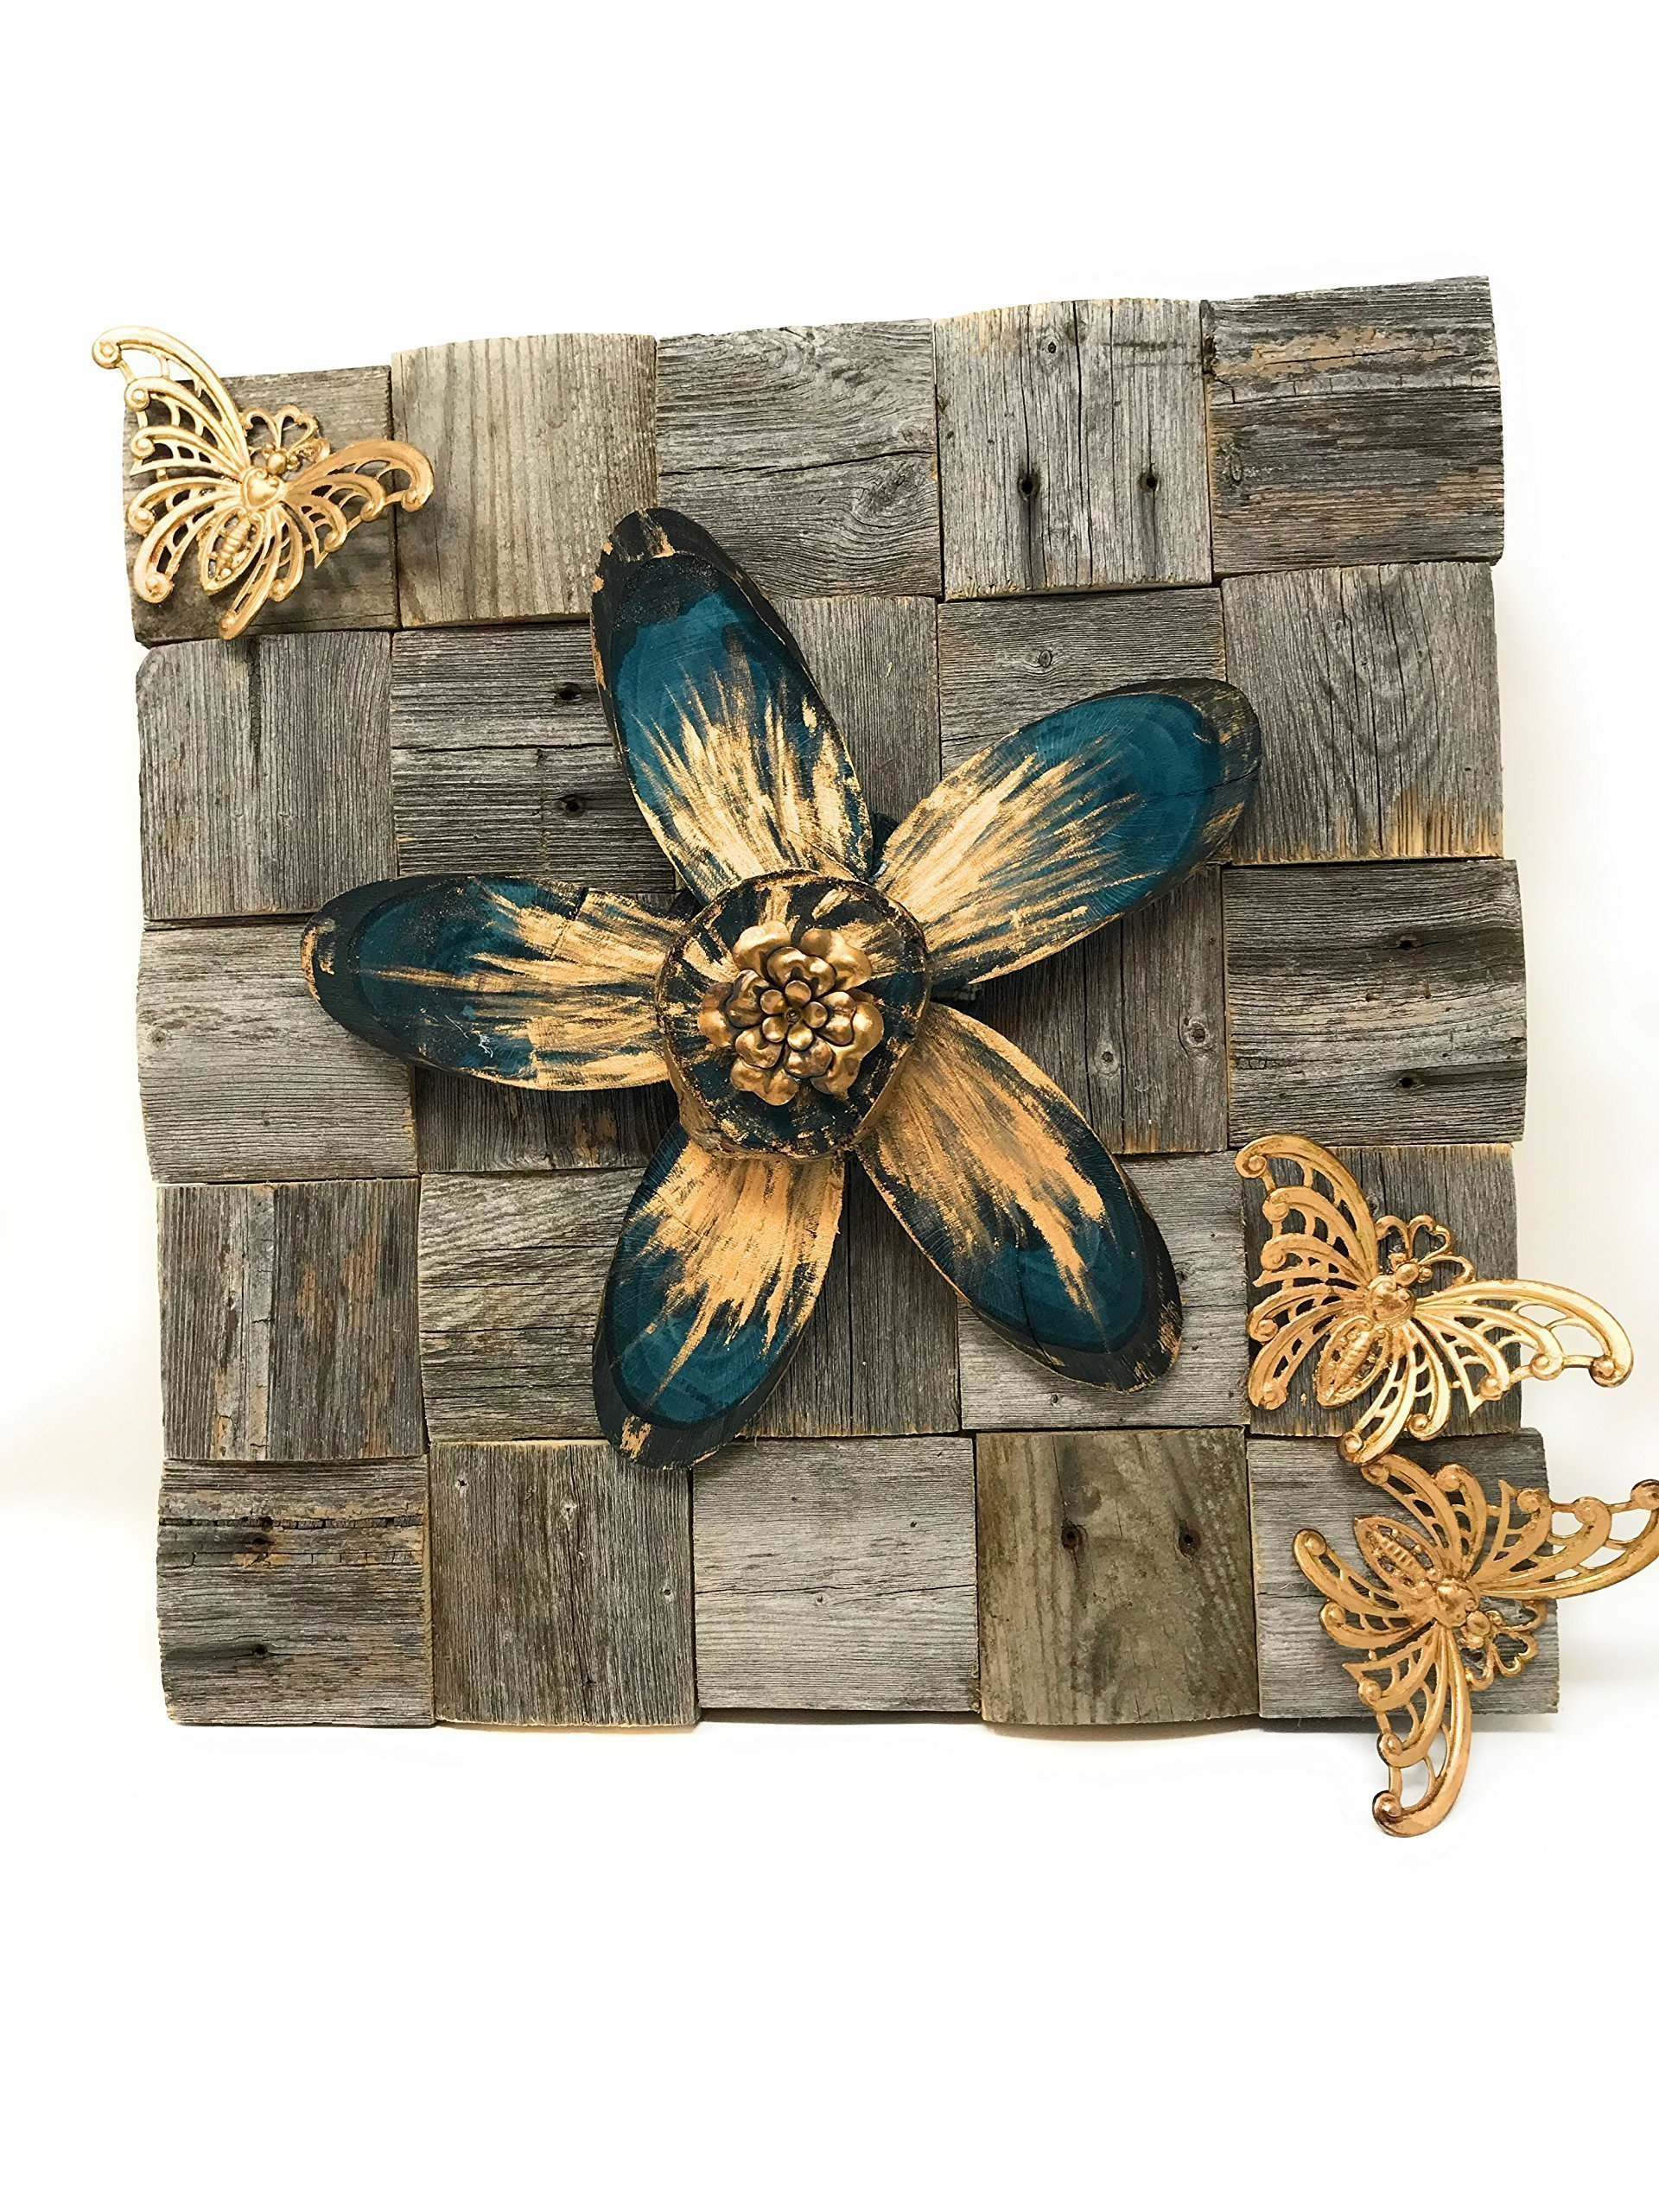 12 x 12 x 2.25'' Handmade Wooden Wall Hanging On Repurposed Fencewood And Decorated With Handpainted Wood Flower And Vintage Brass Butterflies